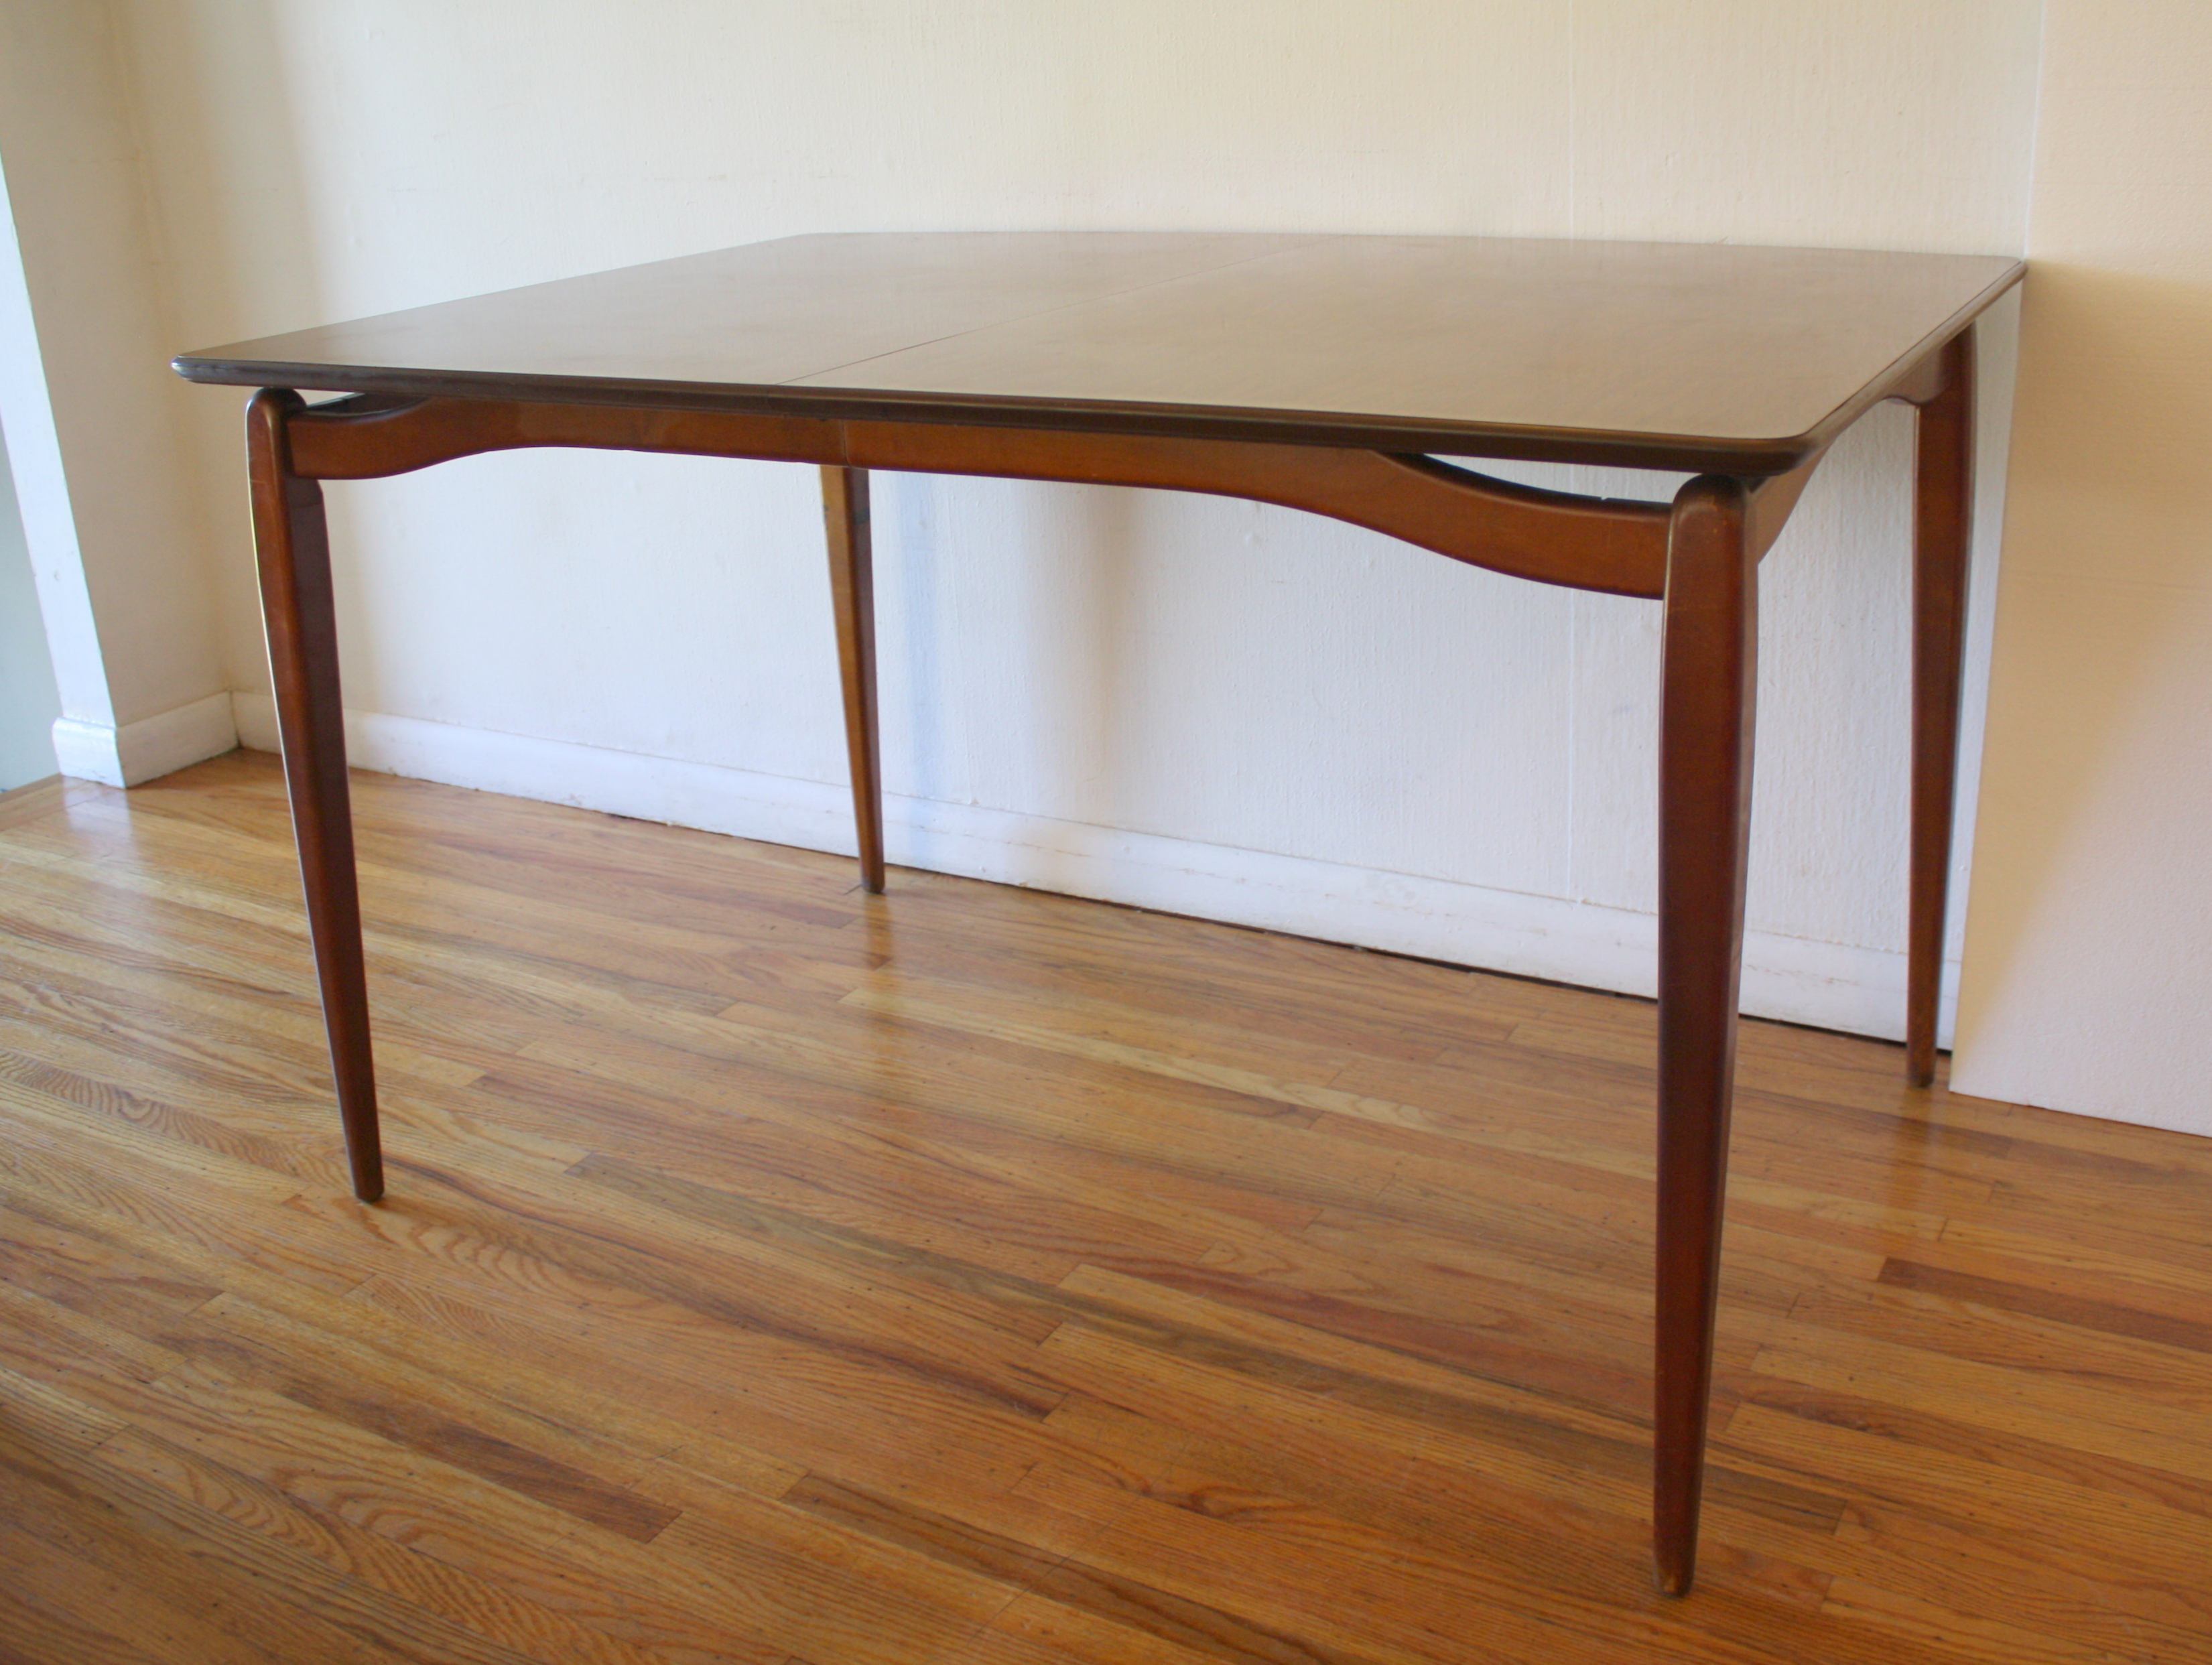 mcm dining table arched base 2.JPG